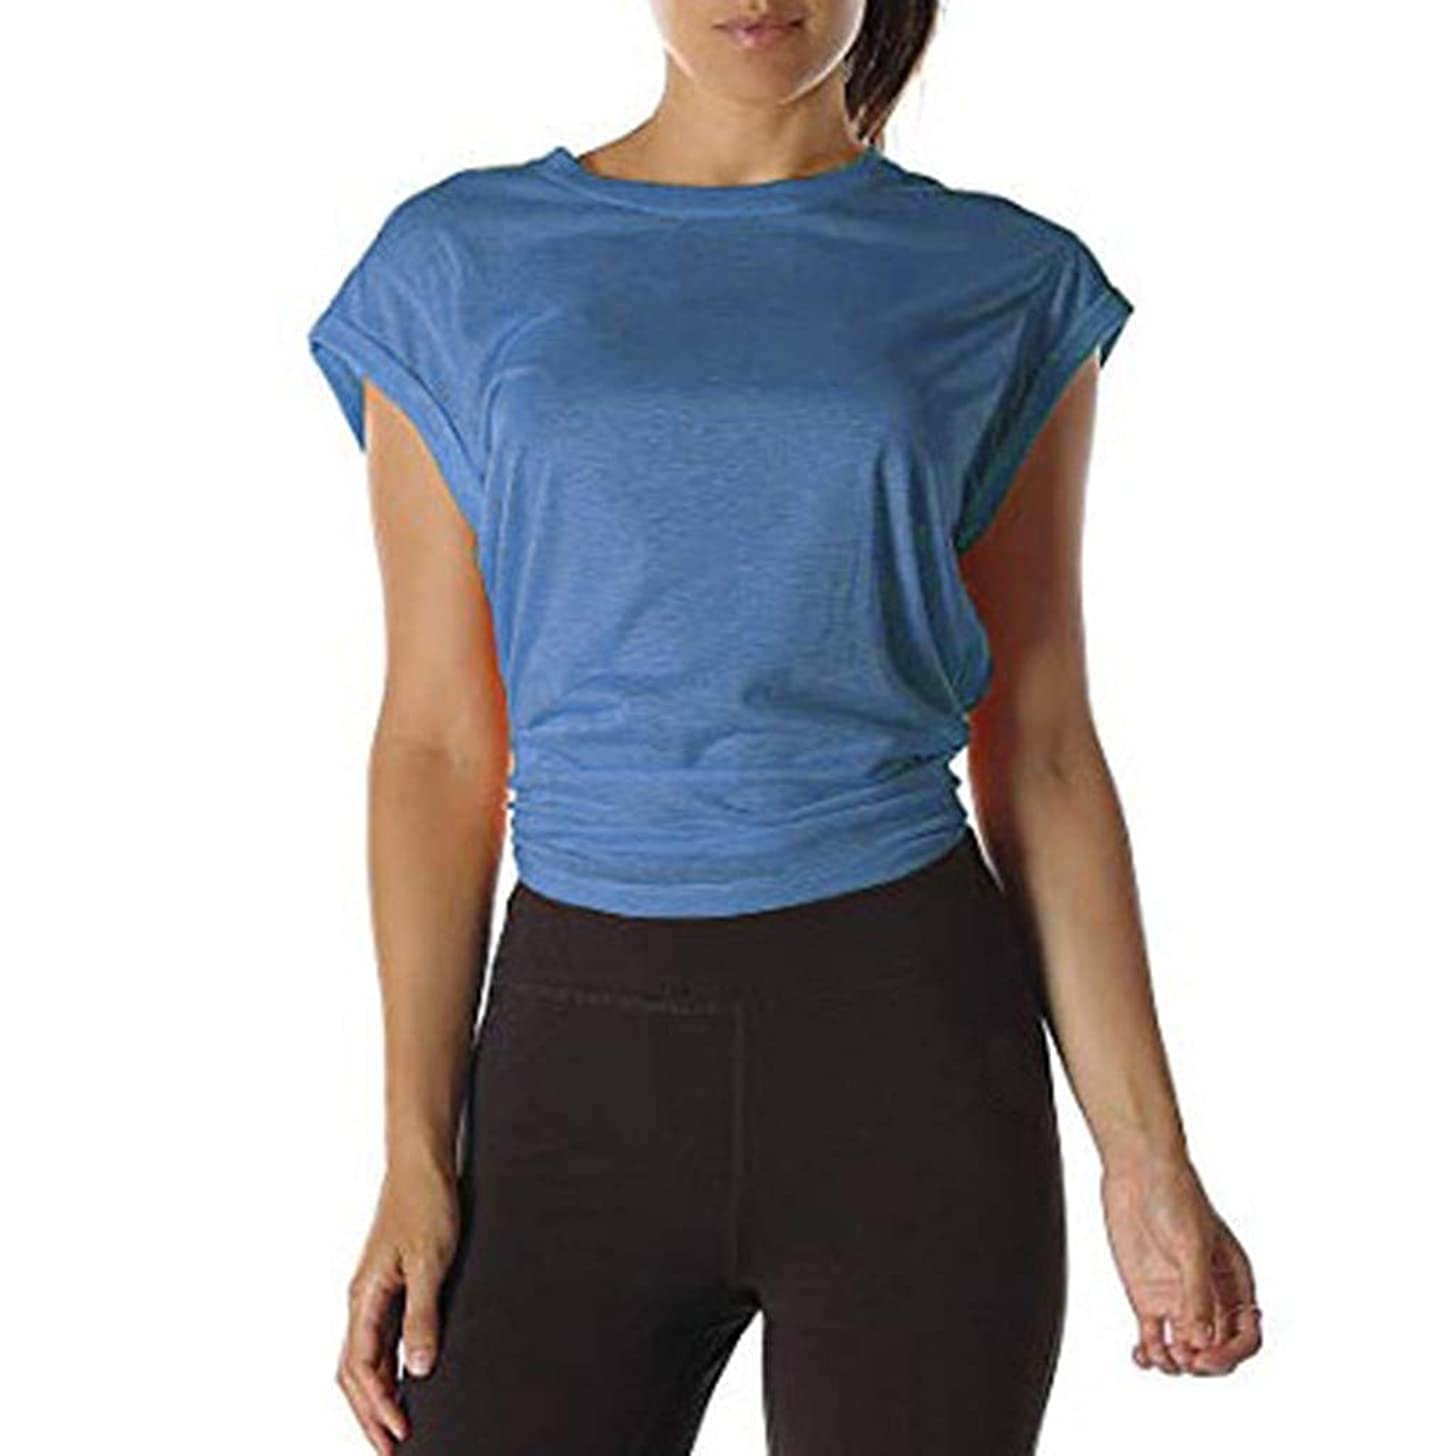 Womens Tops and Blouses Hessimy Open Back Workout Top Shirts - Yoga t-Shirts Activewear Exercise Tops for Women